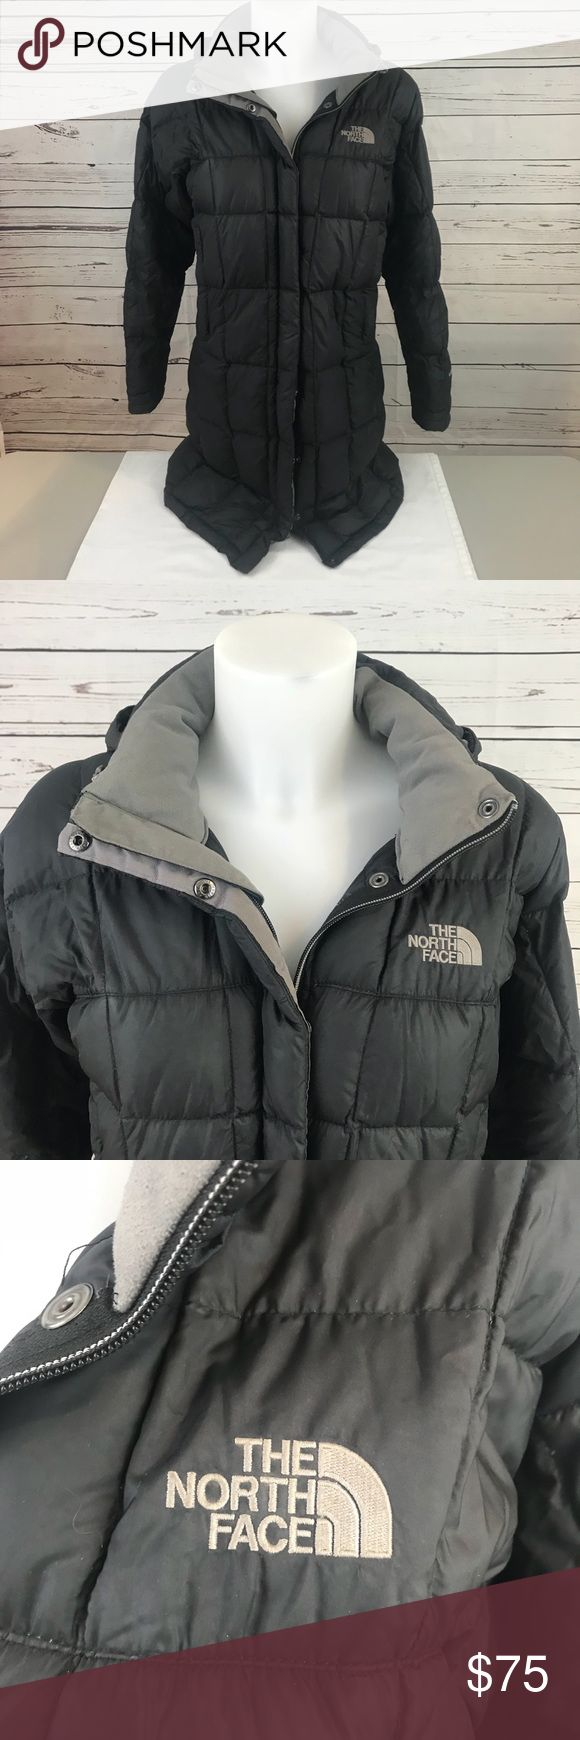 North Face Winter Coat North Face Coat, Women's size Small. Has plenty of life left, but zipper does have some fraying. Will still zip, but it may take a couple try's. All buttons on the front work and both pockets are without holes and zipper works on them. The North Face Jackets & Coats